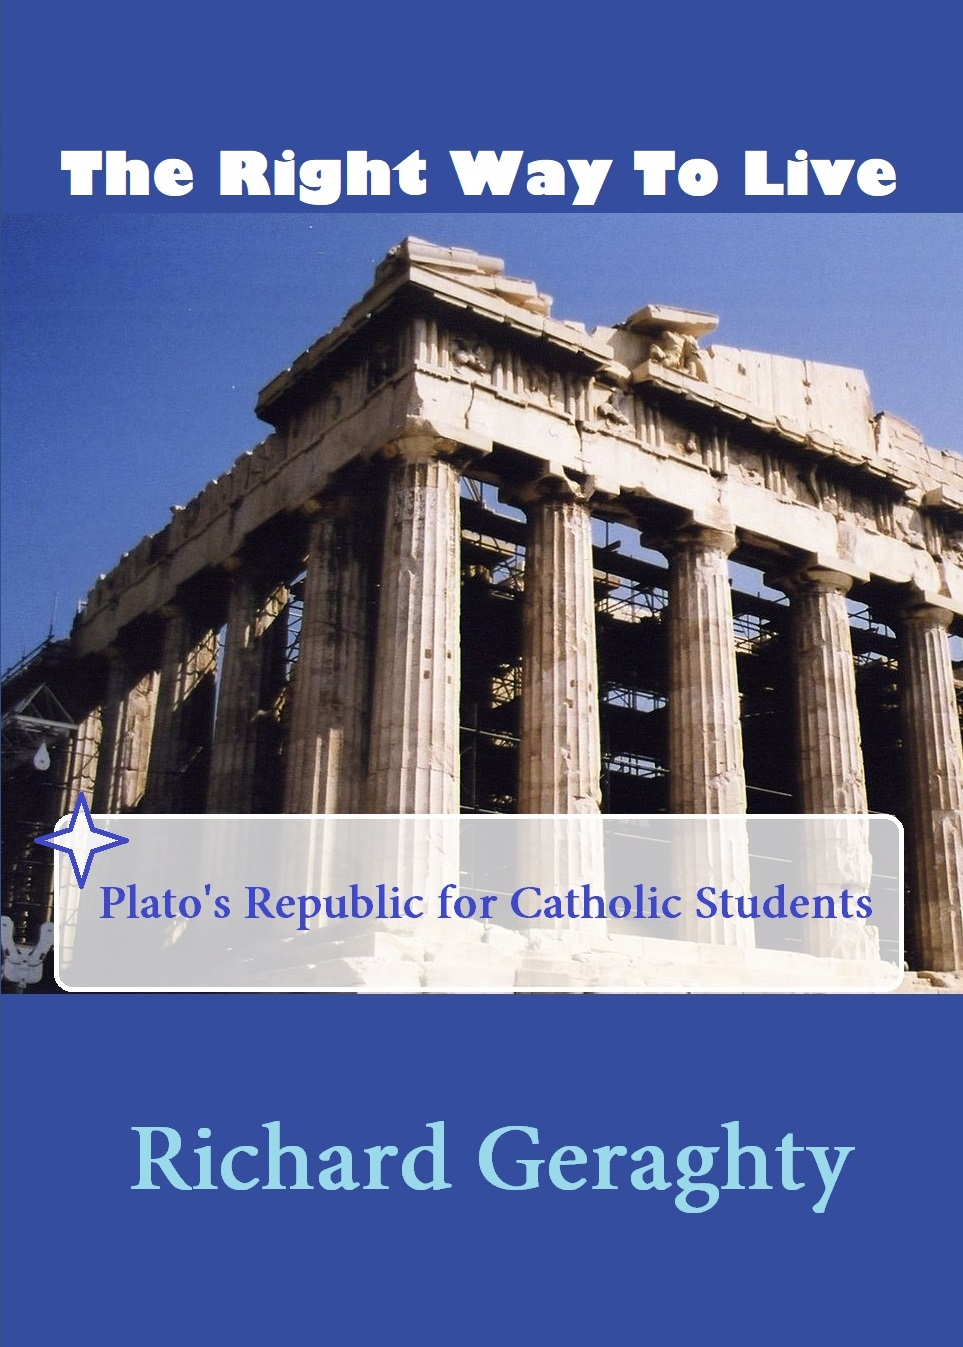 The Right Way to Live: Plato's Republic for Catholic Students by Richard Geraghty